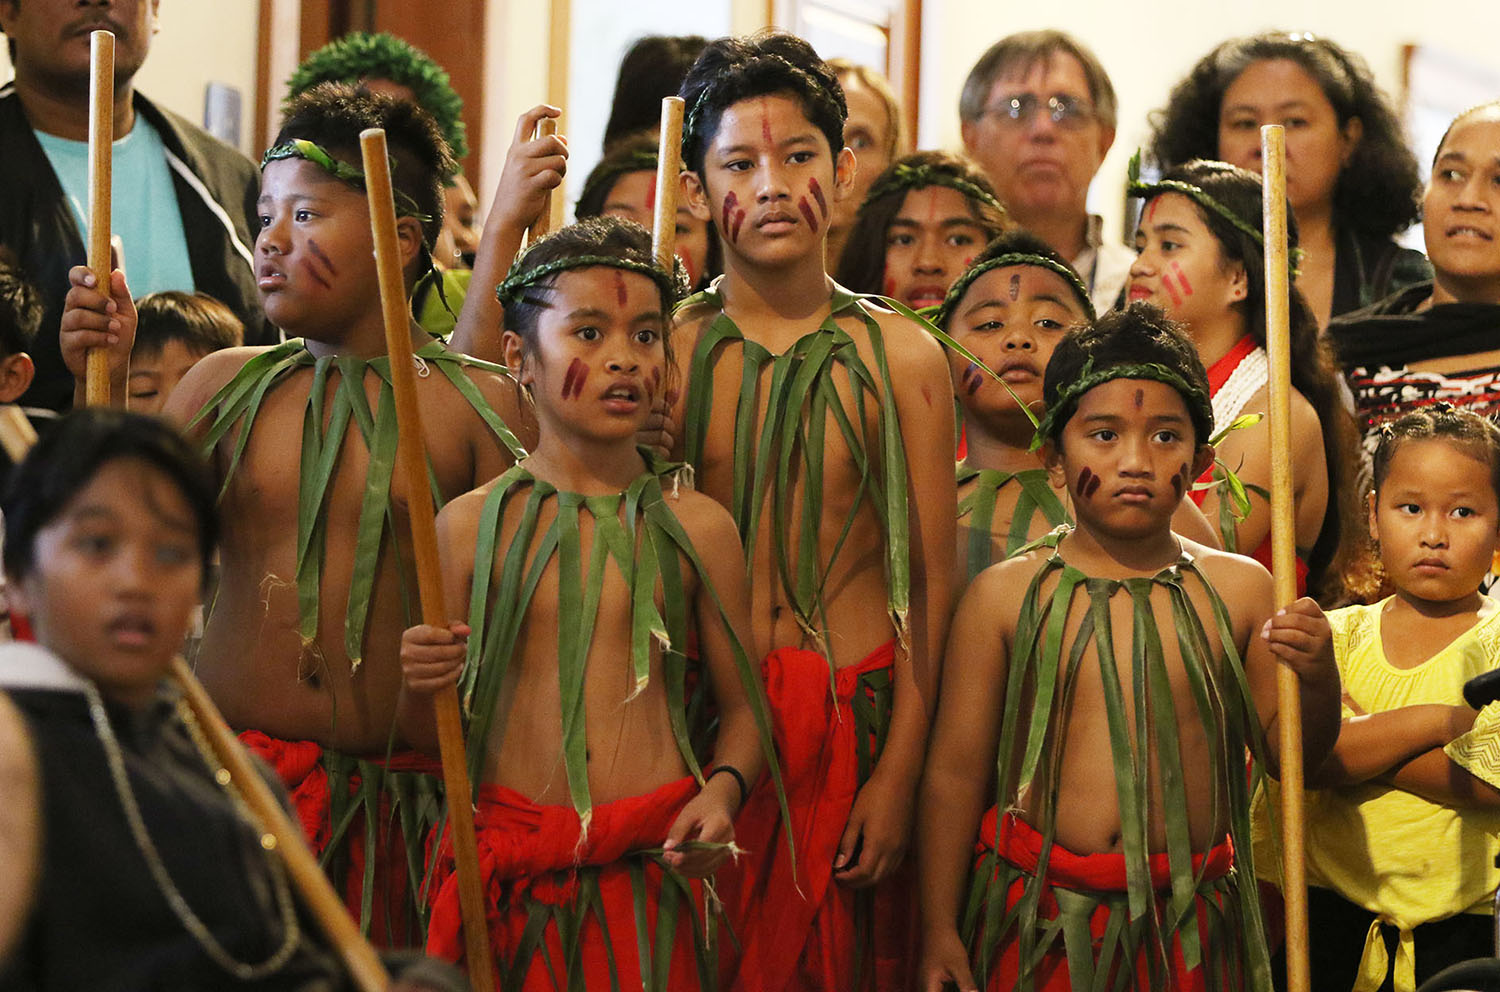 <p>The event gave Micronesians an opportunity to share their individual cultures. Many older immigrants worry that younger generations will lose touch as they assimilate into American culture.</p>